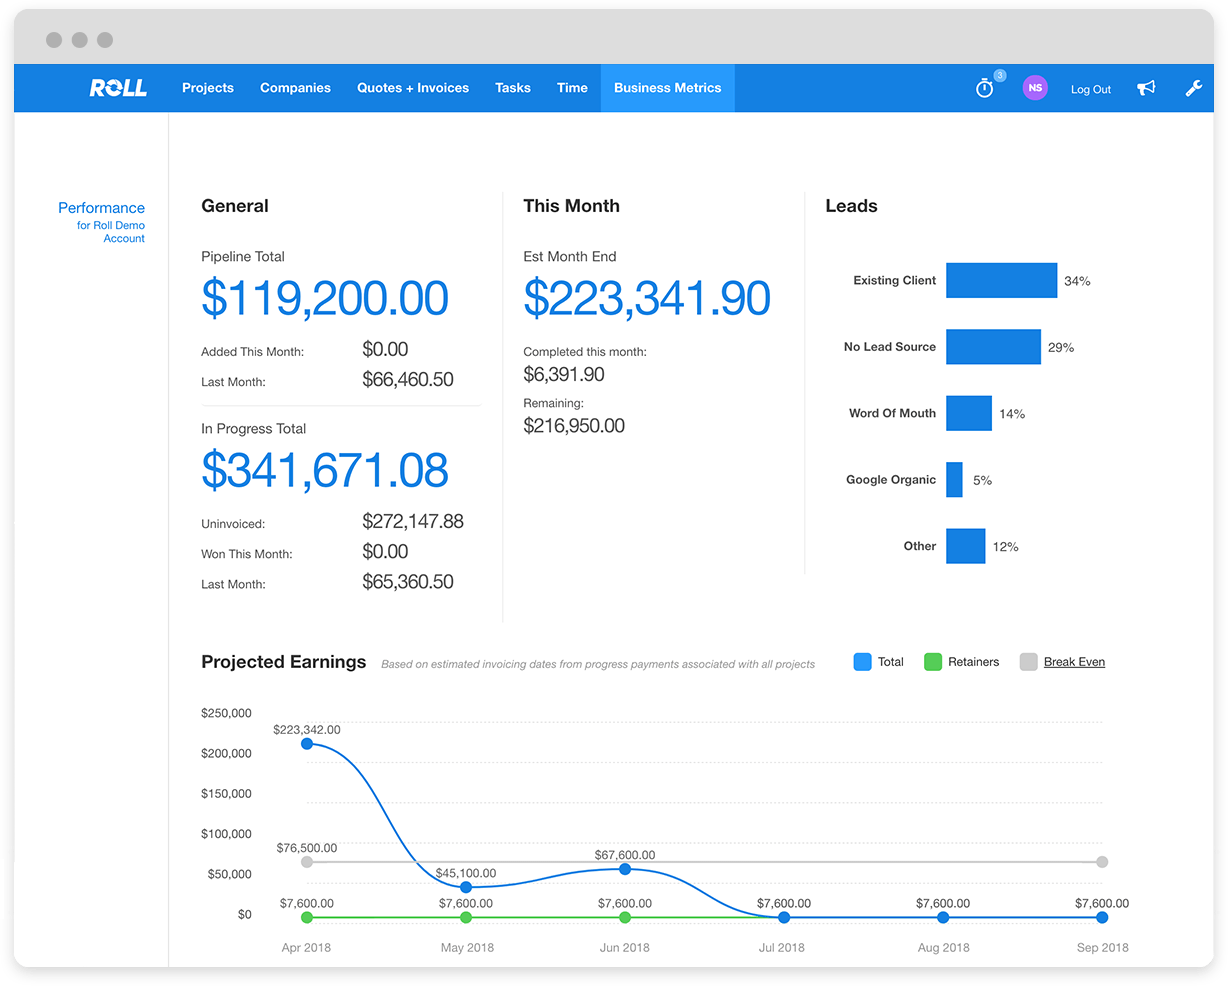 The Roll Business Intelligence Dashboard